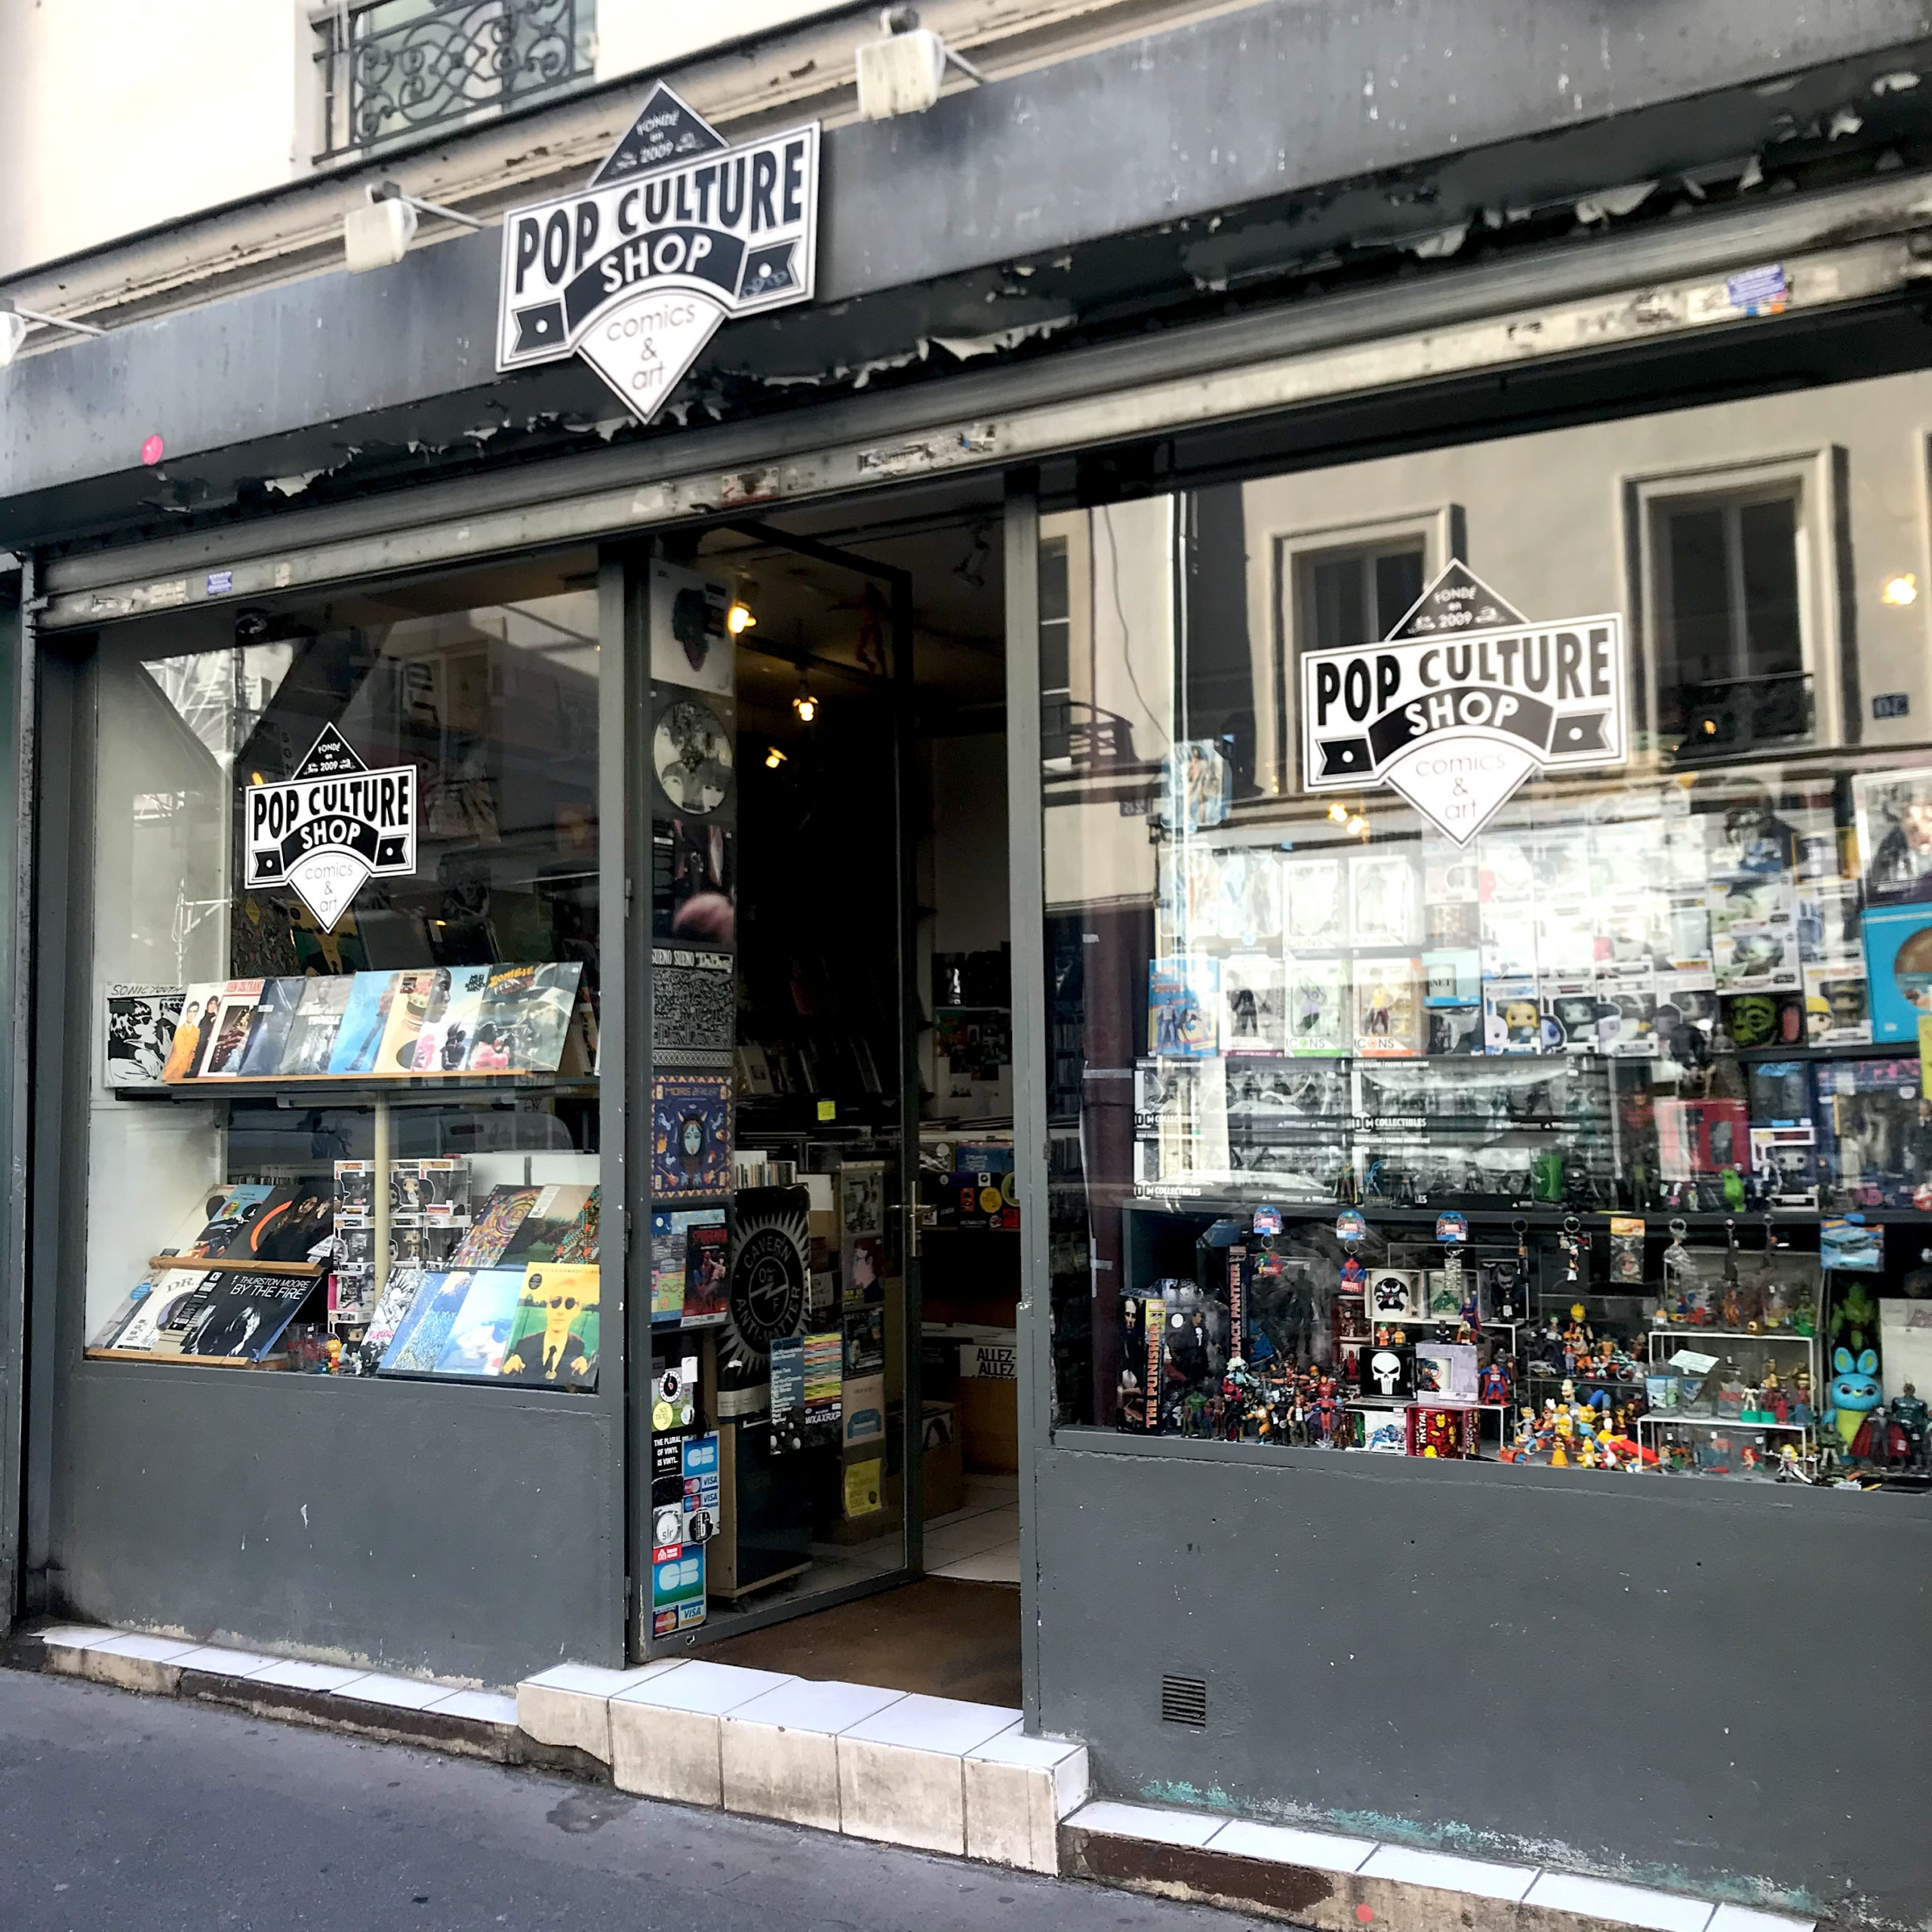 Pop Culture Shop, Paris